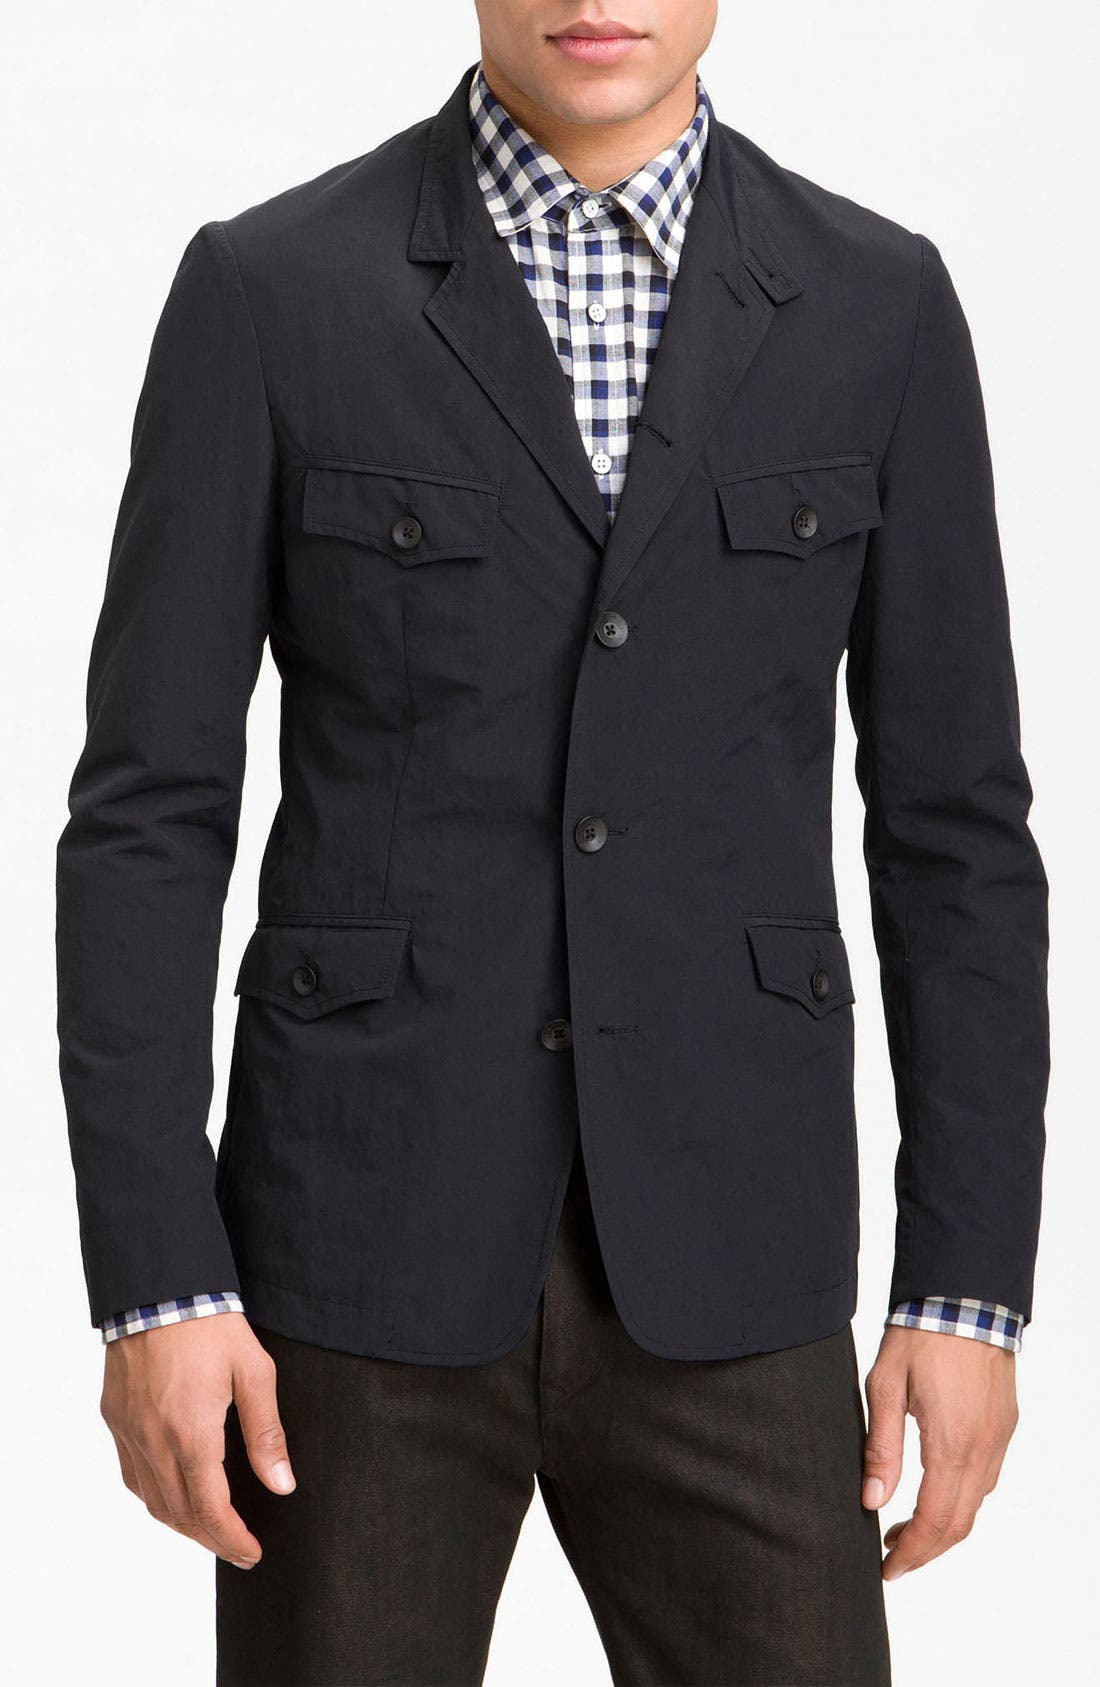 Alternate Image 1 Selected - rag & bone 'Service' Blazer